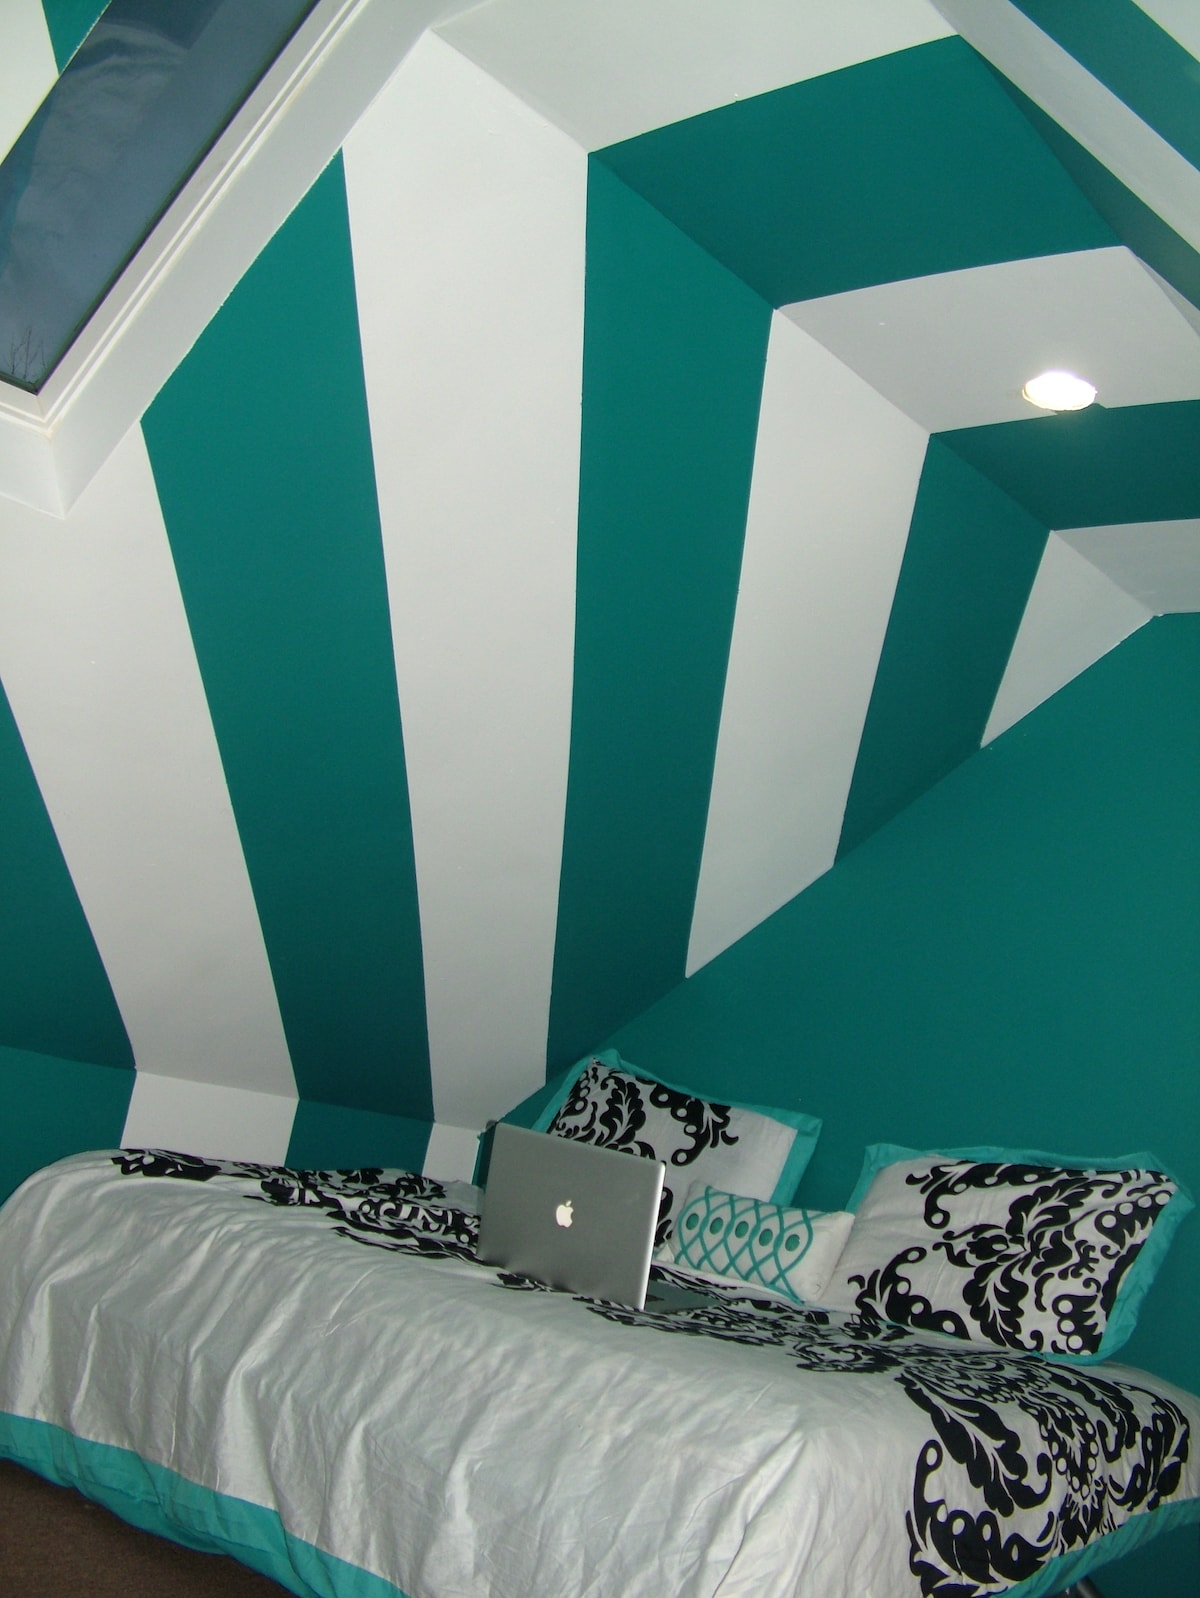 King Size Bed Area WITHOUT air mattresses